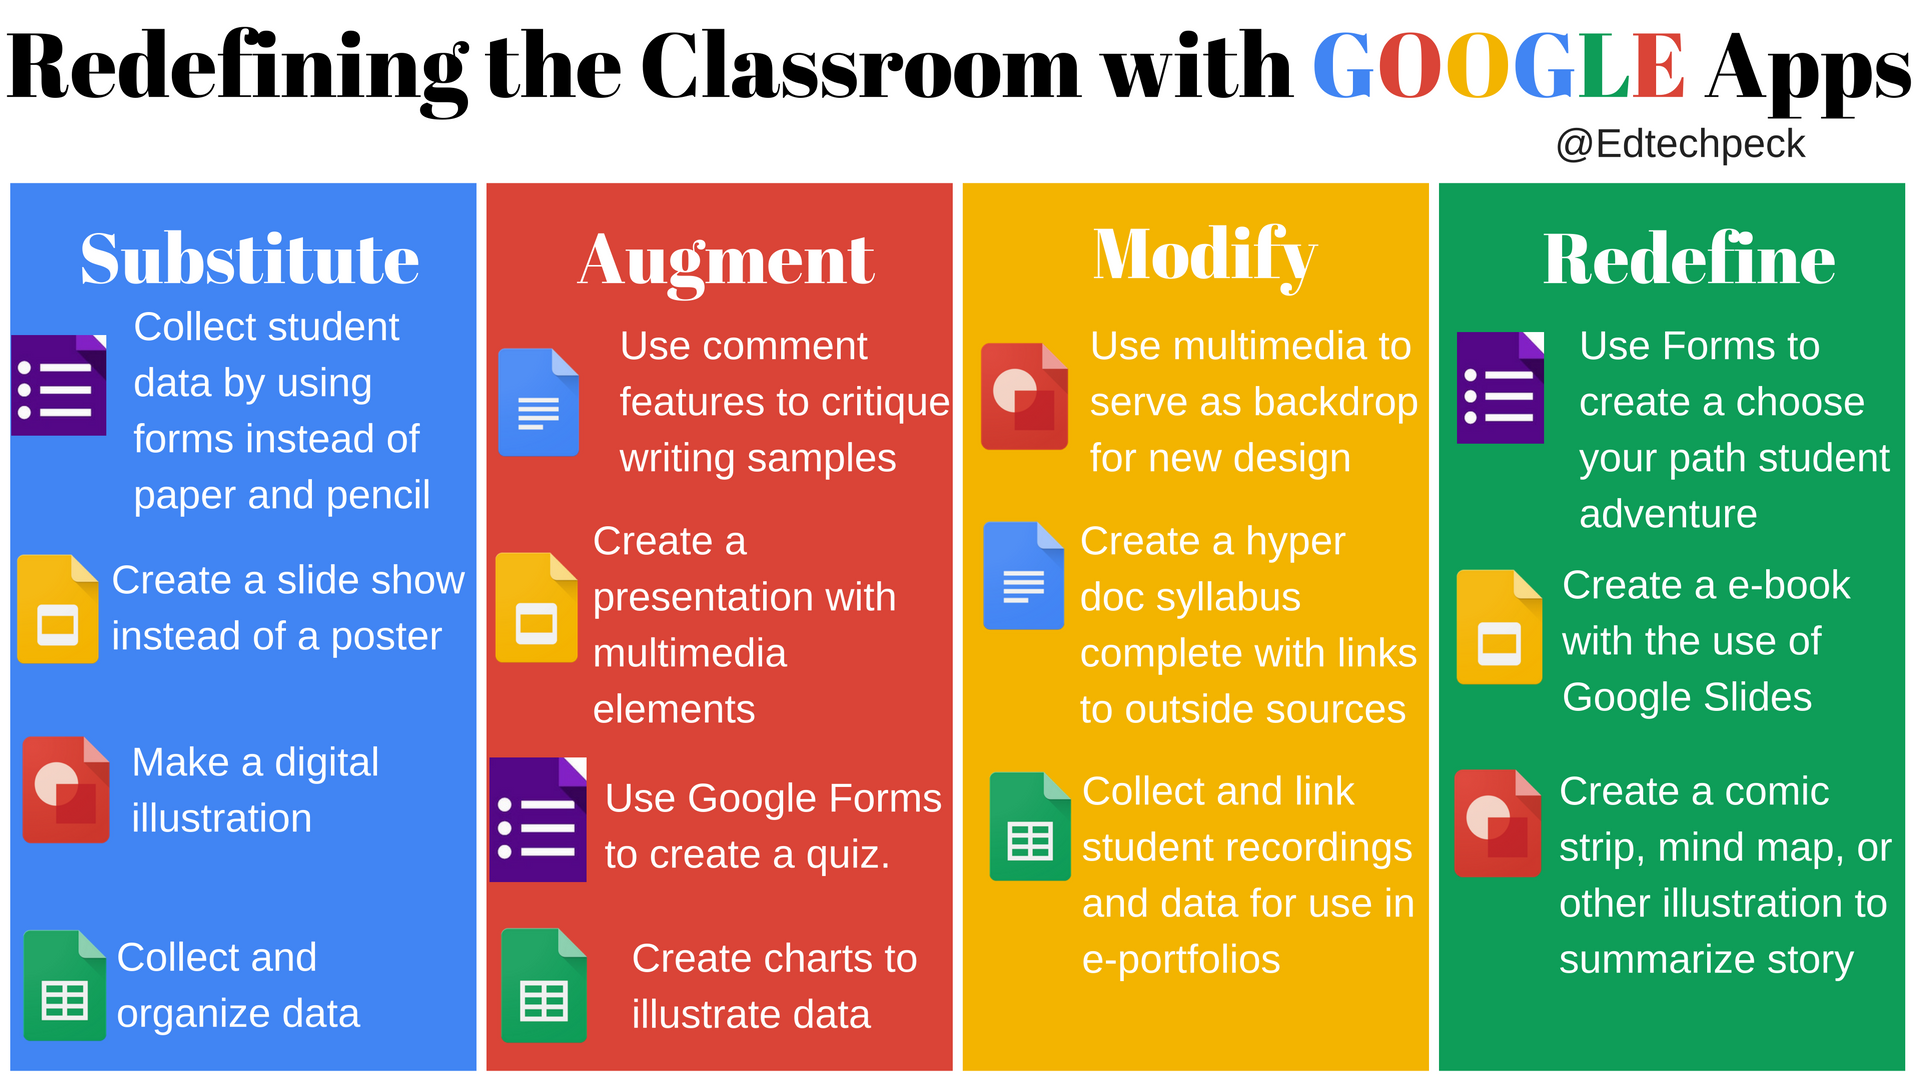 Using @gsuite to redefine the classroom!  #pete2017 #edchat #SAMR https://t.co/XuShI0tsab